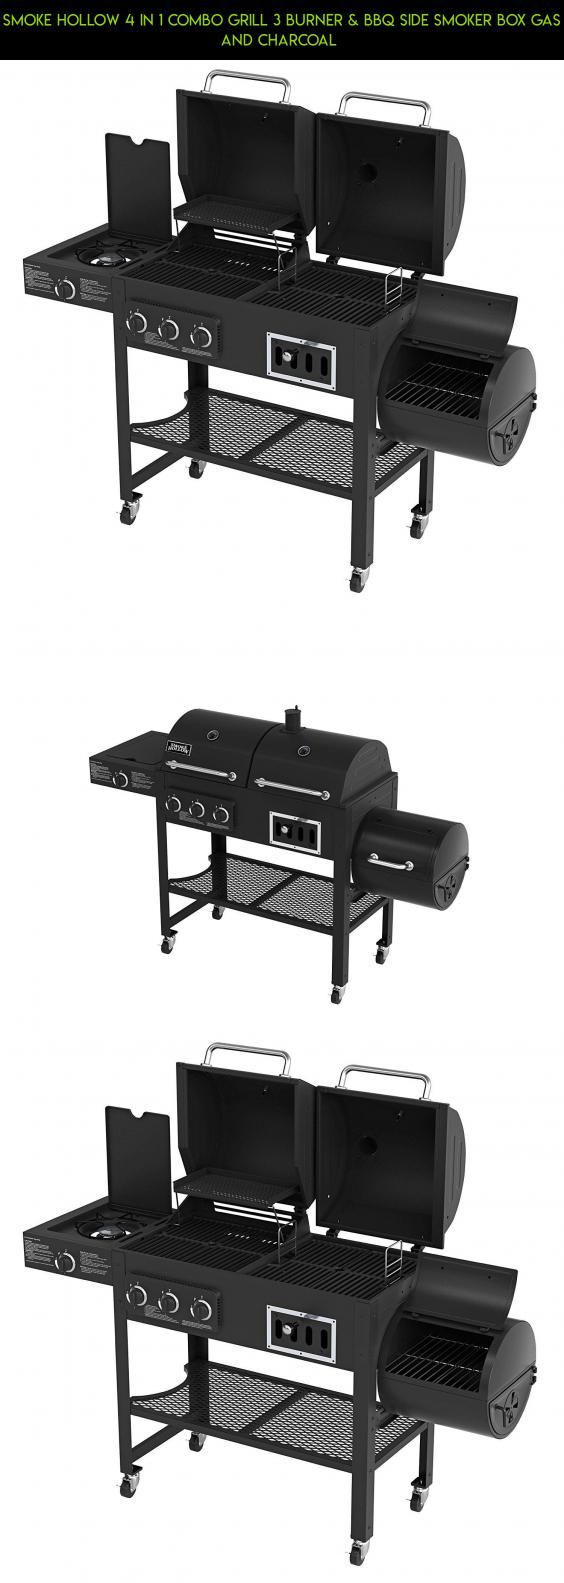 Smoke Hollow 4 in 1 Combo Grill 3 burner & BBQ Side Smoker Box Gas and Charcoal  #drone #technology #kit #plans #charcoal #combo #camera #racing #and #parts #tech #grills #fpv #shopping #gas #gadgets #products